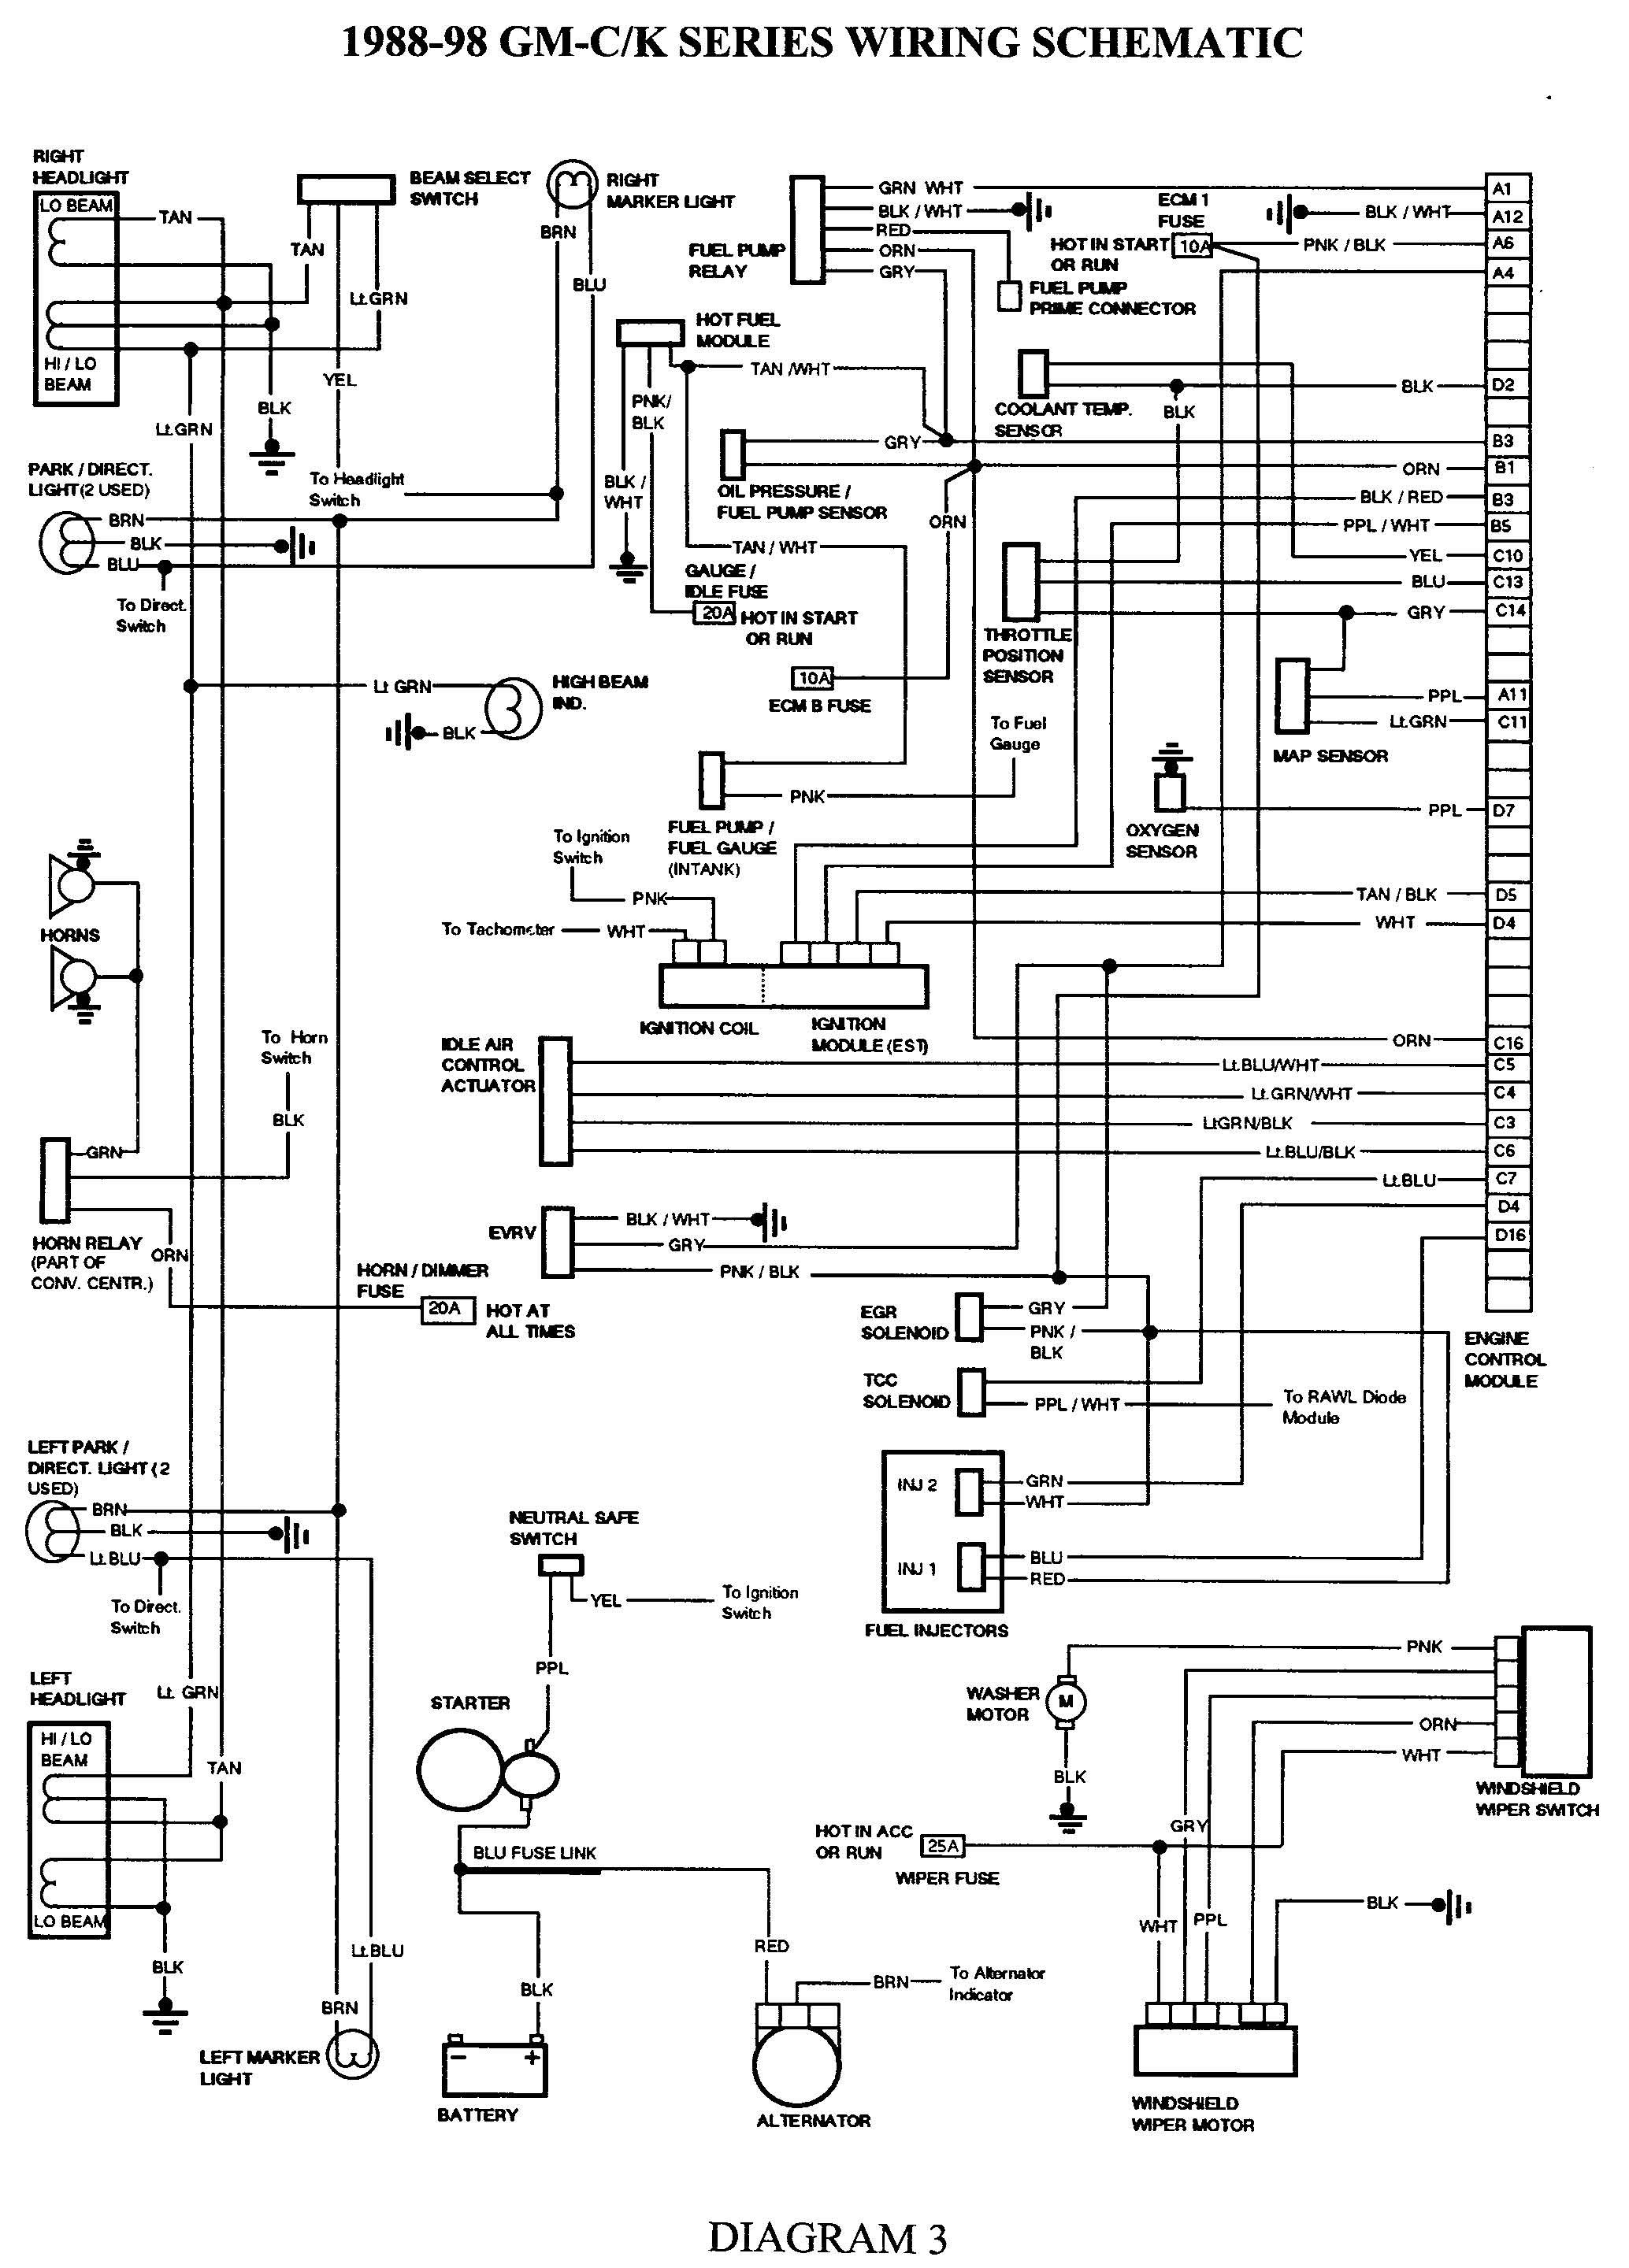 240v Wiring Diagram Honeywell R847a Library Ra832a Relay Gmc Truck Diagrams On Gm Harness 88 98 Kc Rh Pinterest Com